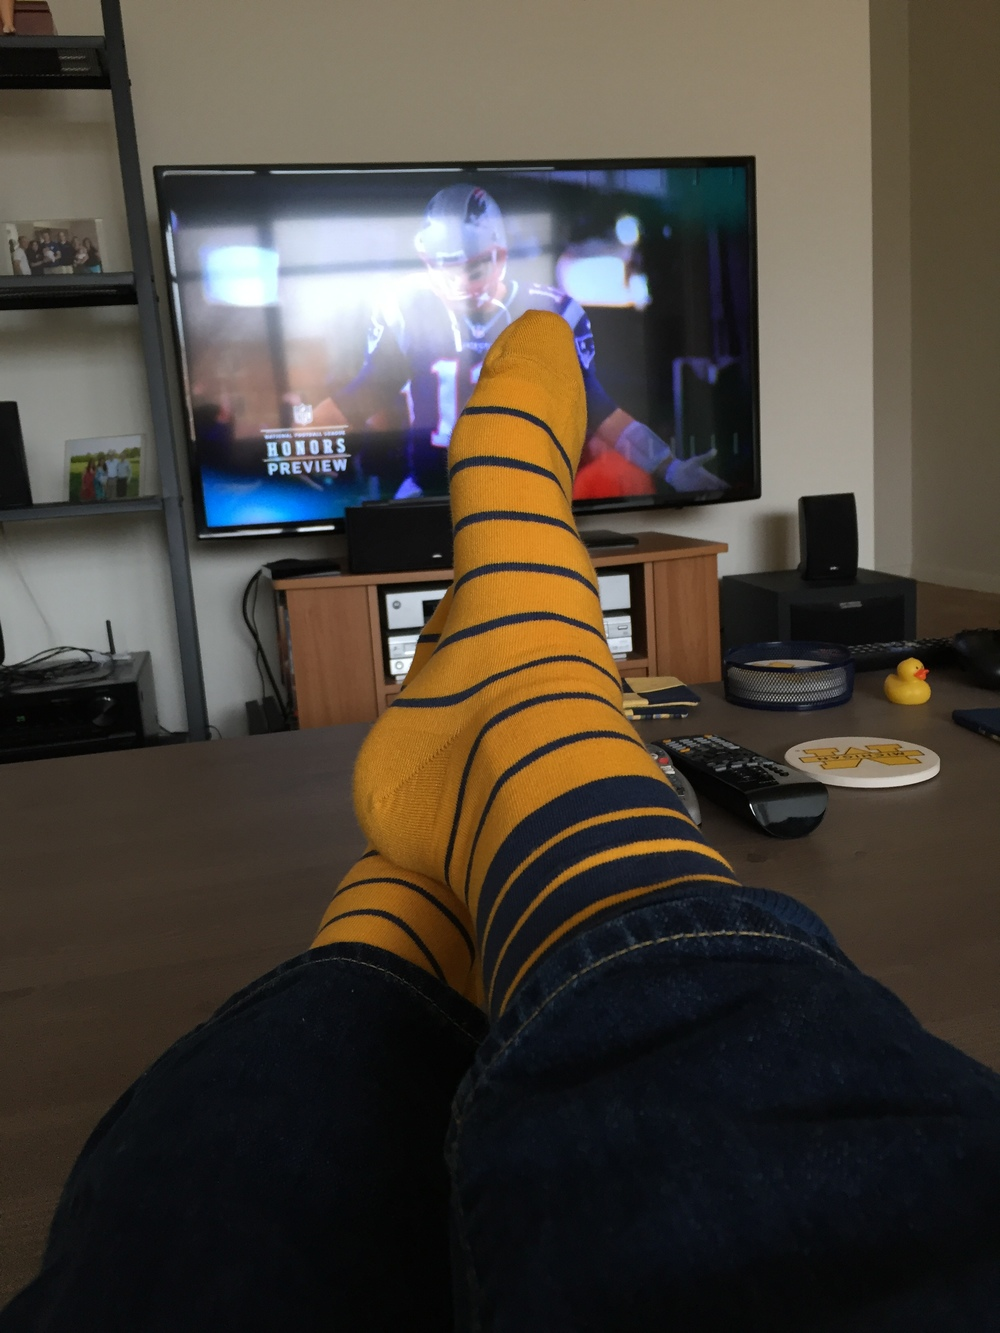 A shameless excuse to post my maize and blue socks from  Nice Laundry .